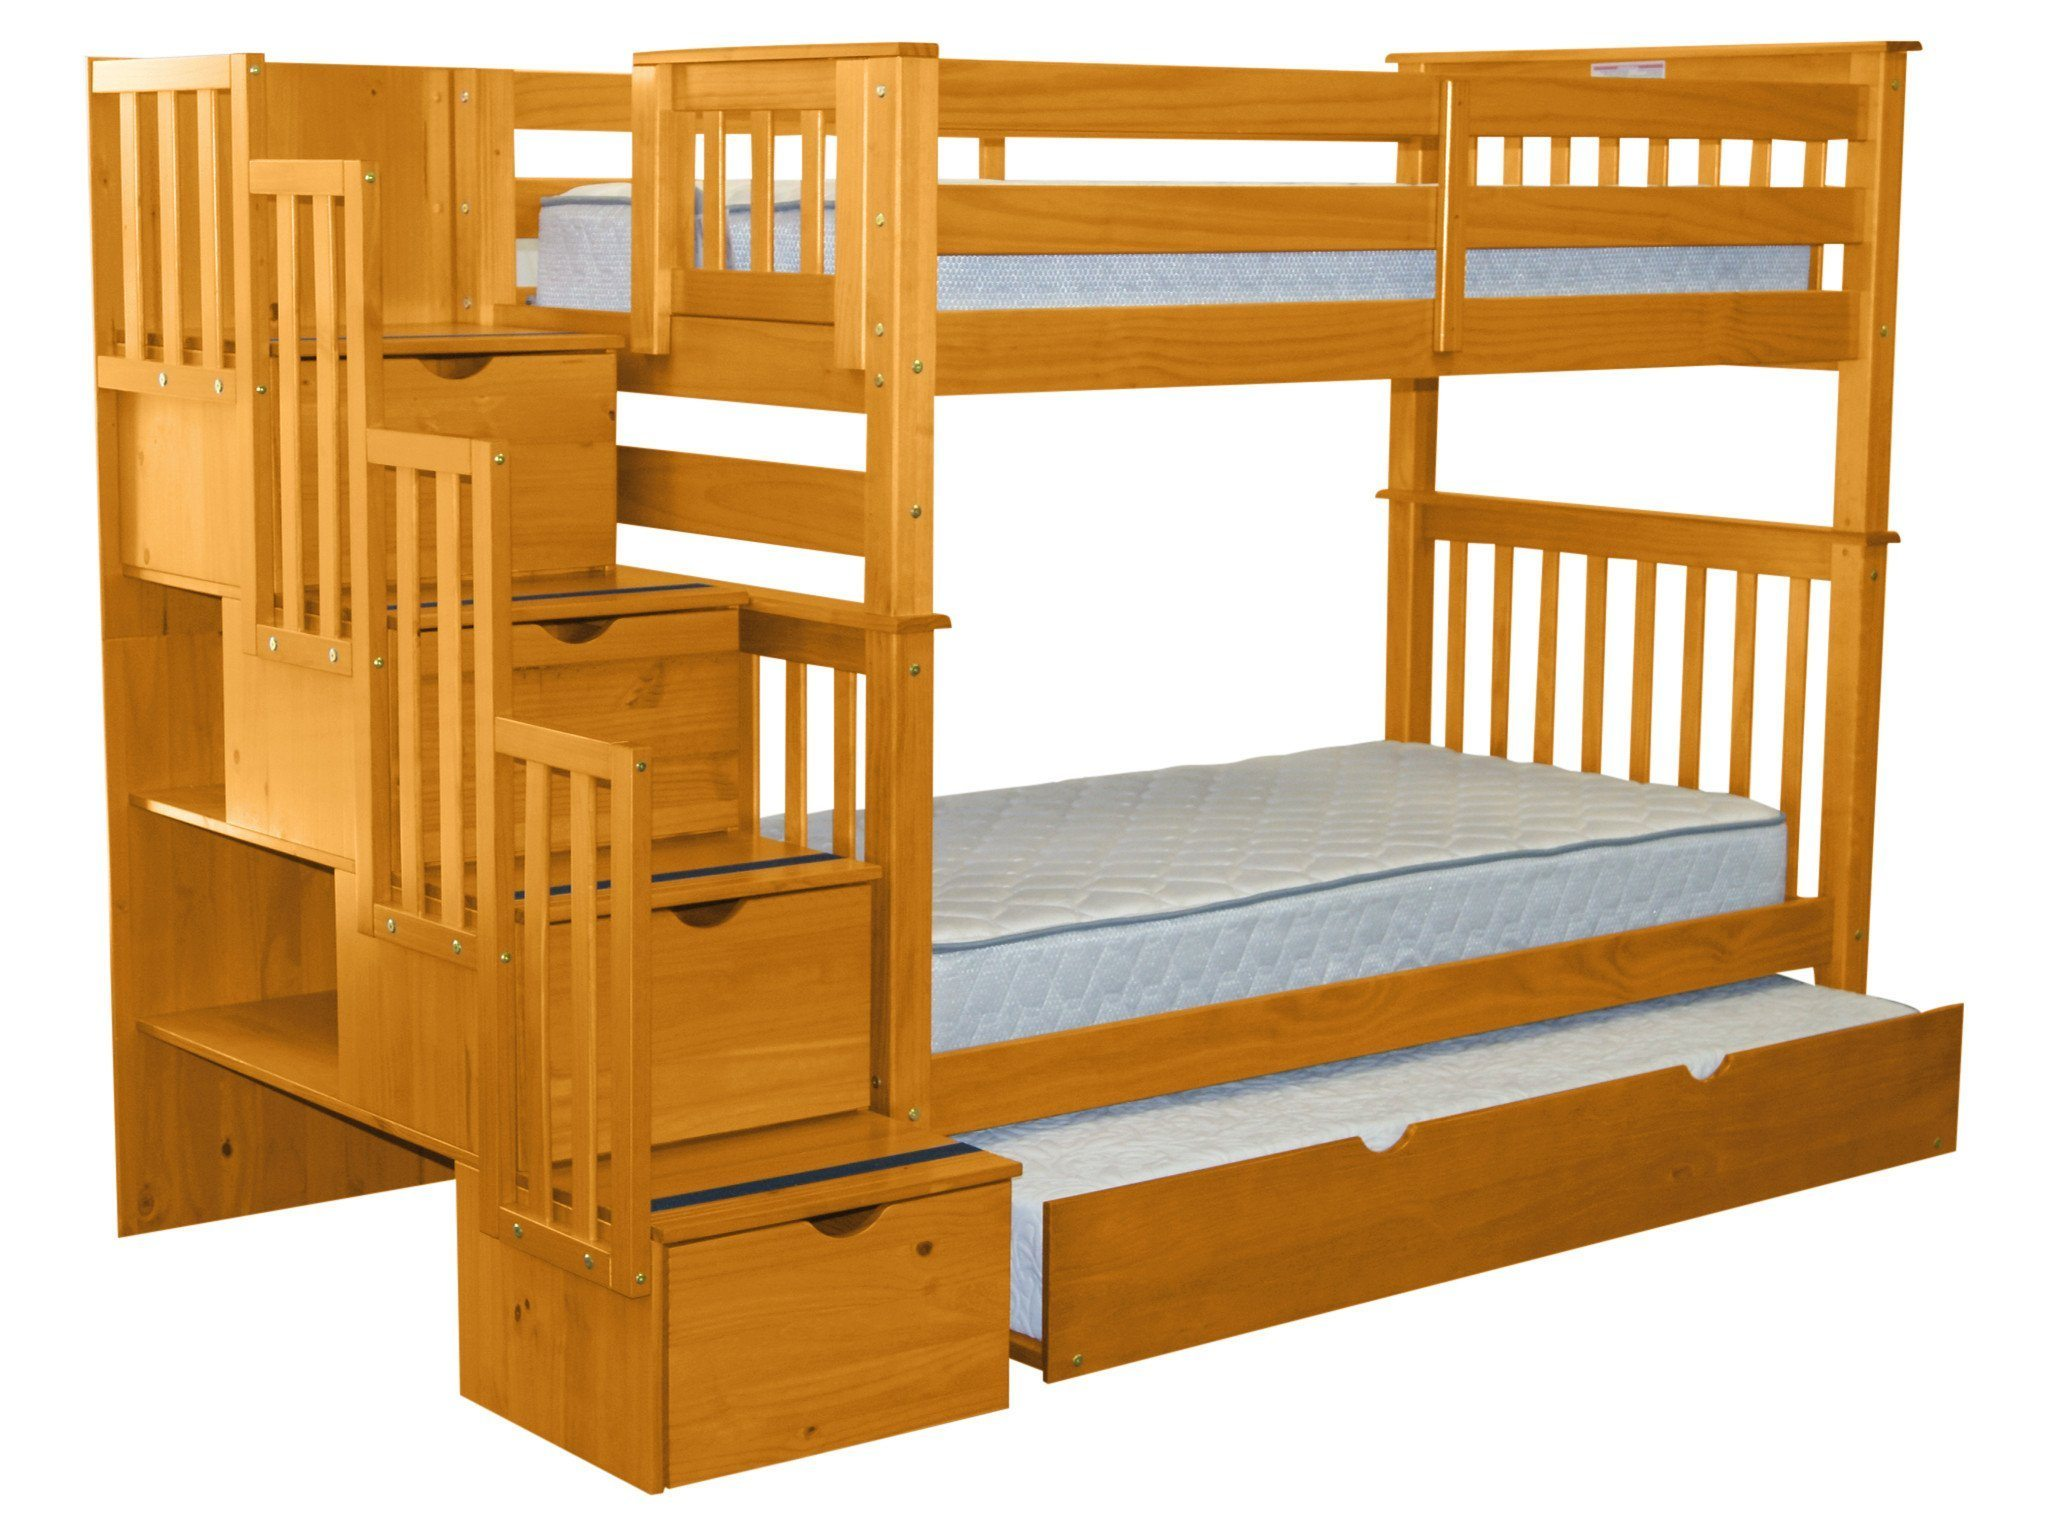 Bedz King Tall Stairway Bunk Beds Twin Over Twin With 4 Drawers In The  Steps And A Twin Trundle, Honey   Walmart.com